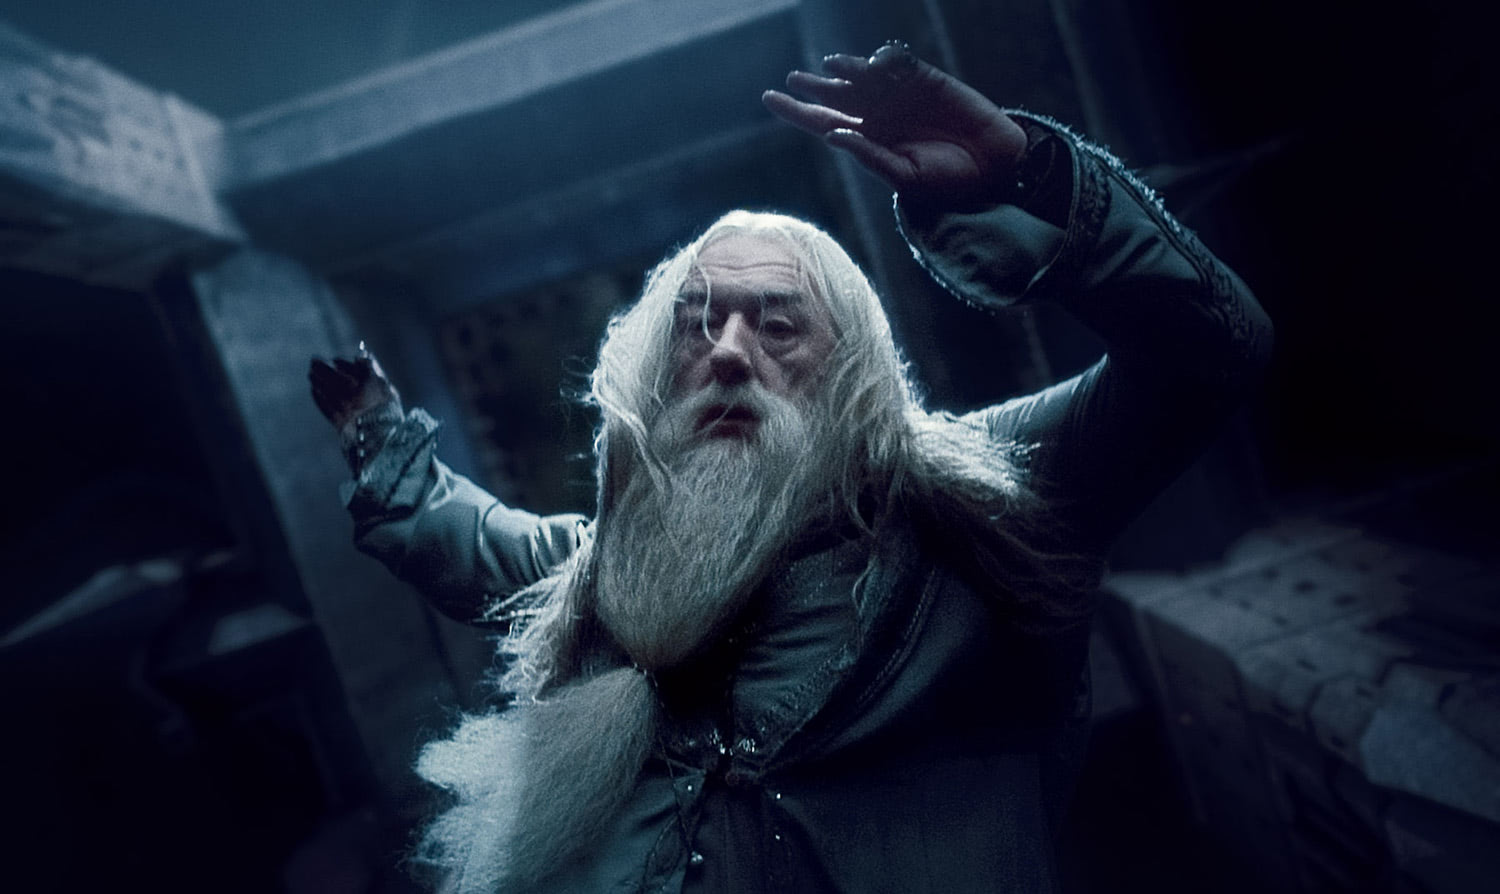 Dumbledore falls to his death